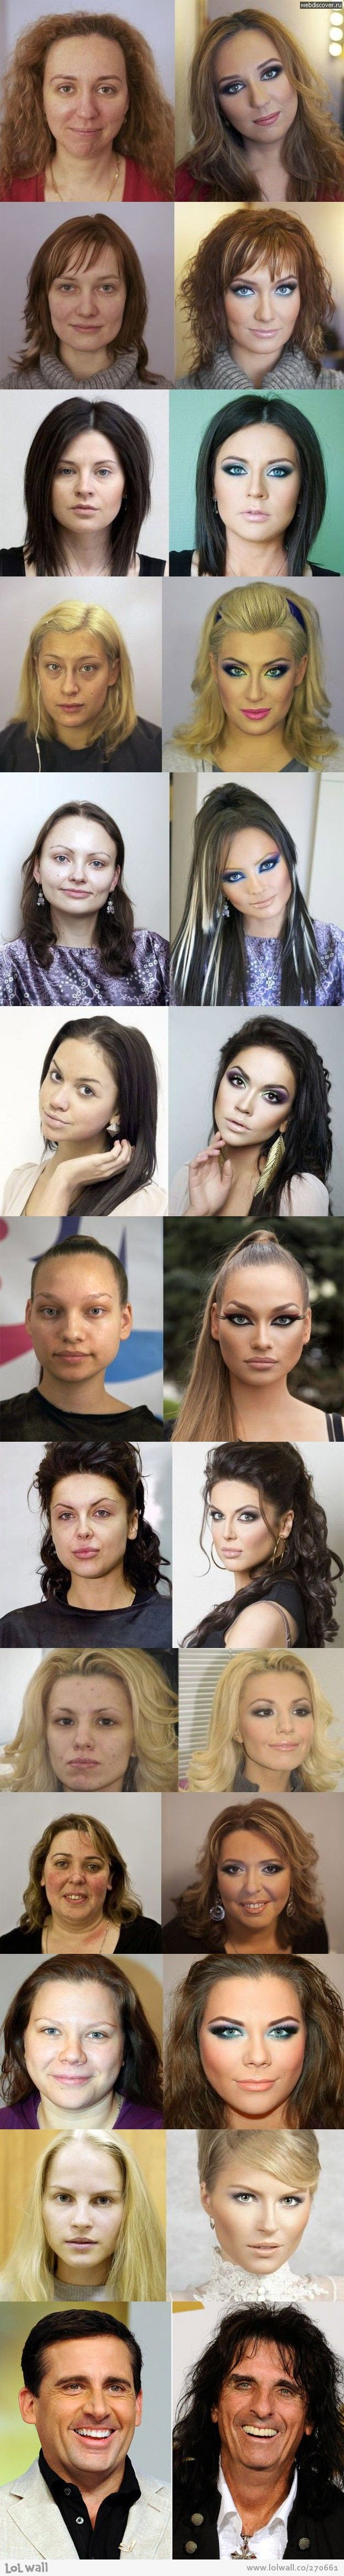 Stripper transformation from www.lolwall.co @Heather Creswell Parish  How #makeup can change someone? #MakeOverbar